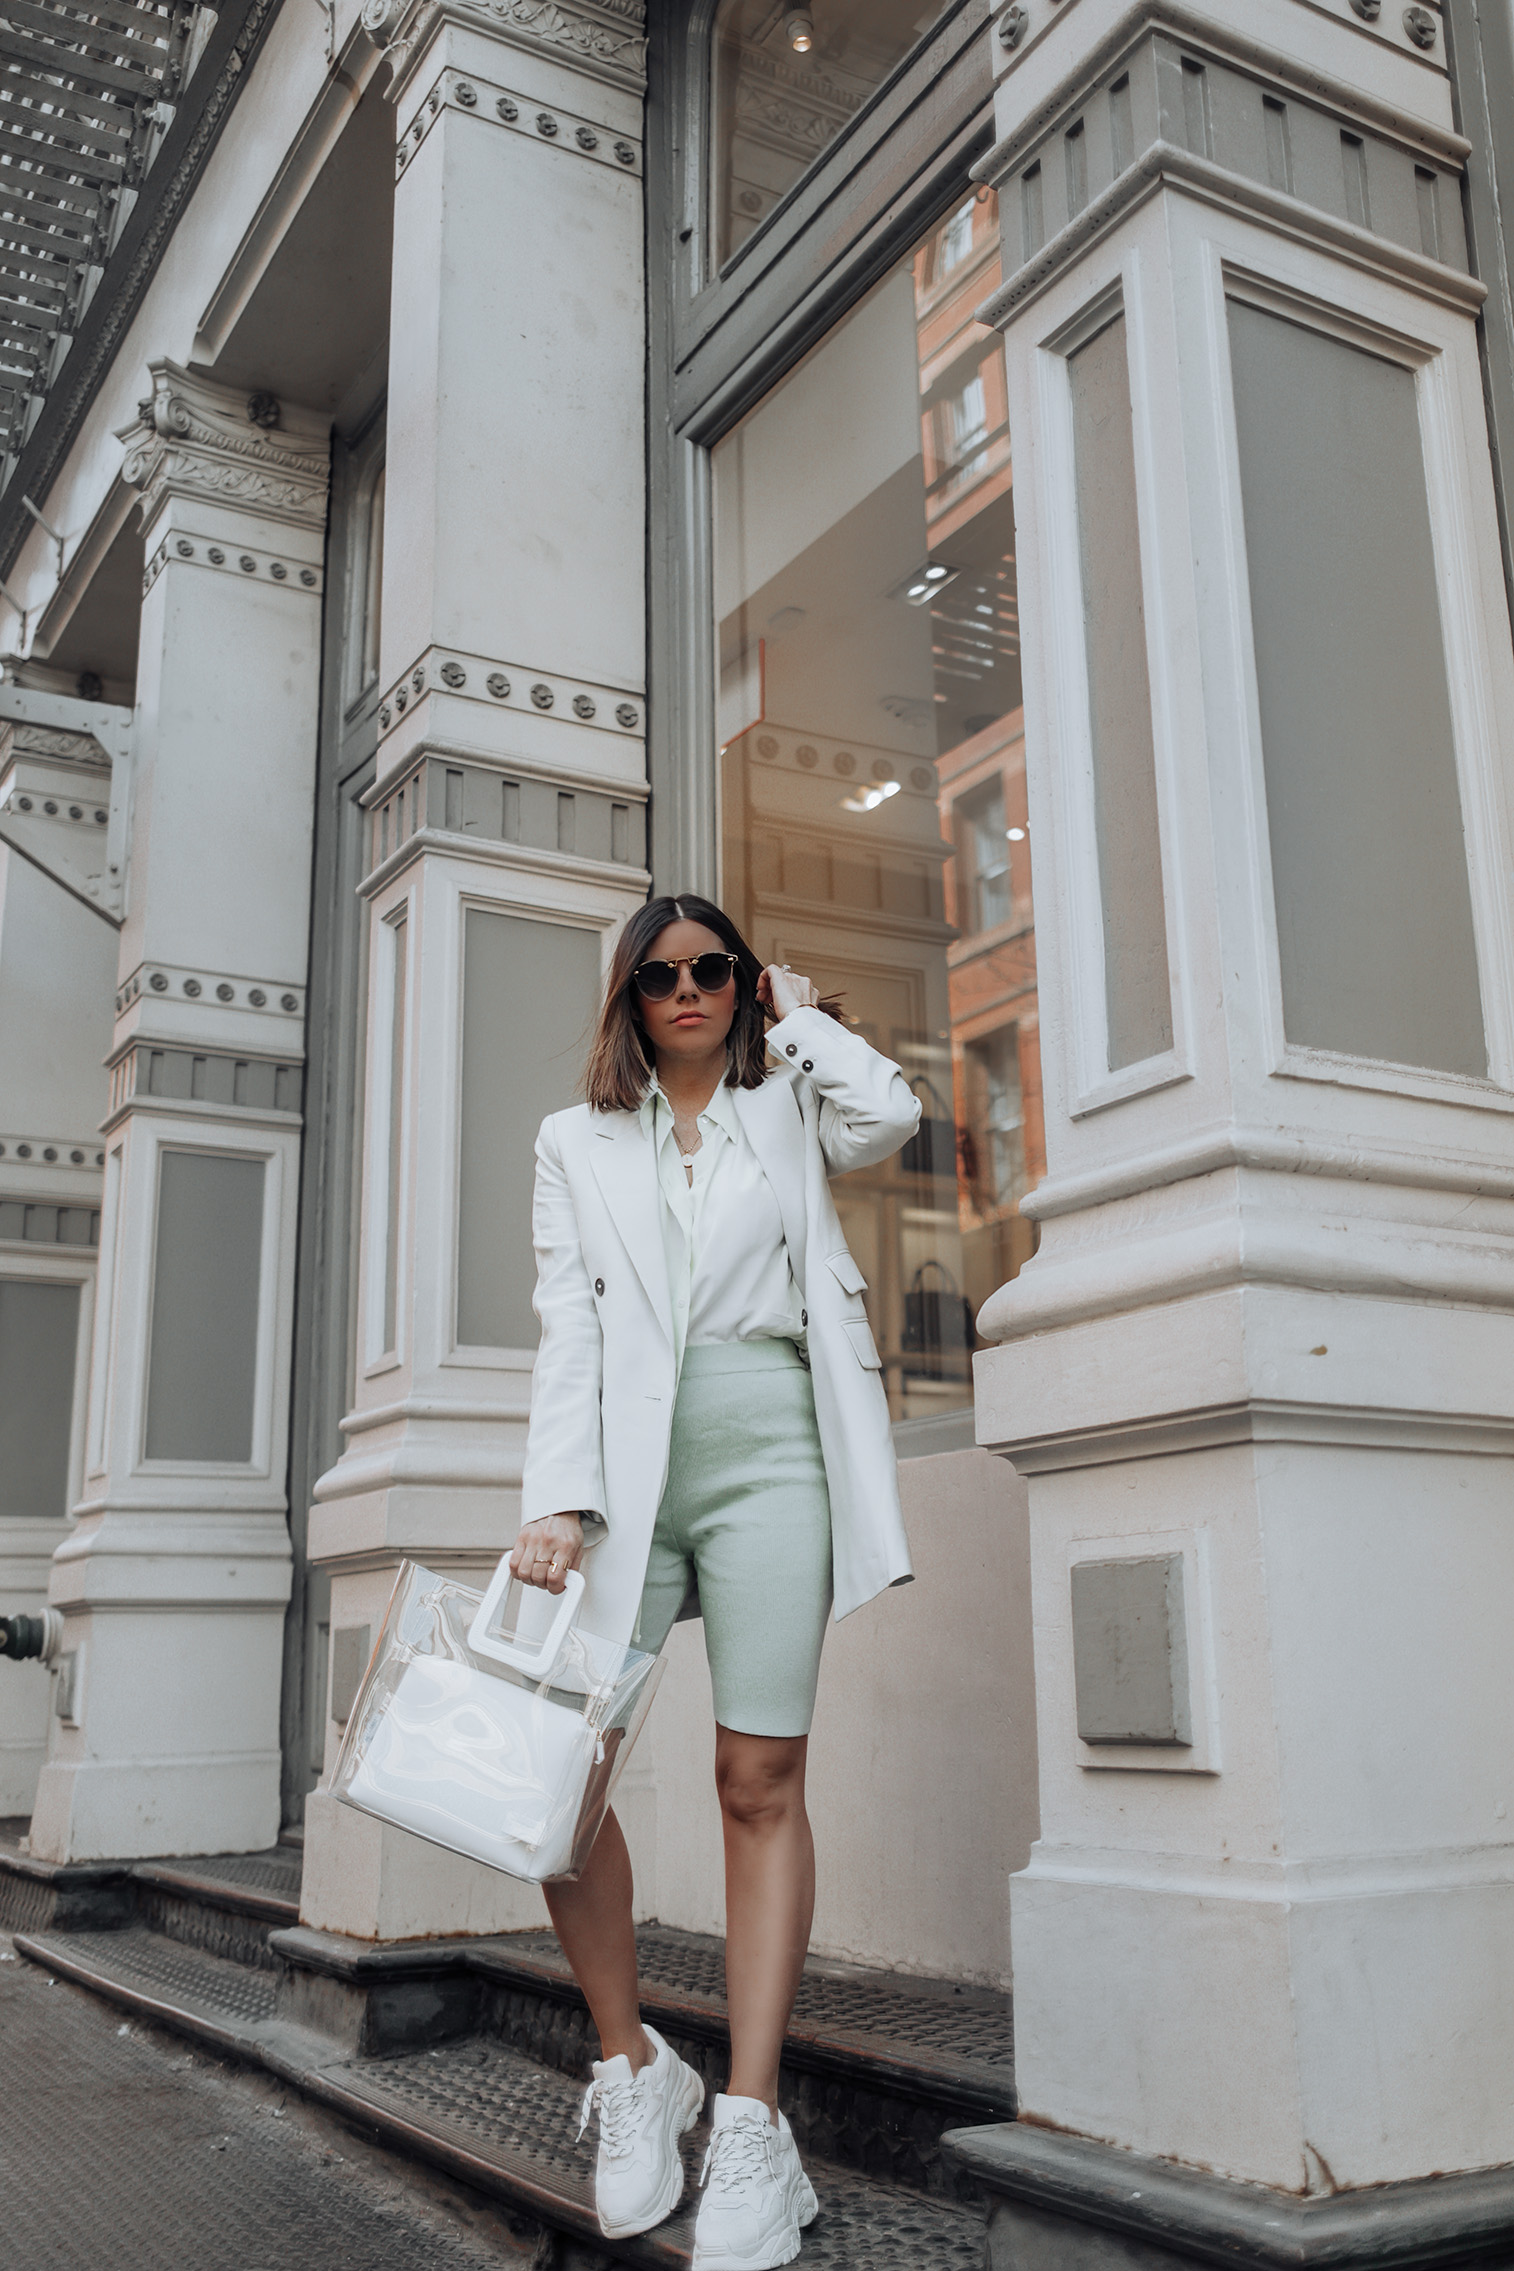 Happy Friday loves! Pastels are coming in hot this spring! I'm seriously obsessed with this structured blazer from Mango and wear it all the time! It's such a pretty pastel color and I love how it's a bit oversized as well. #streetstyle #bikershorttrend #fashionblog #liketkit